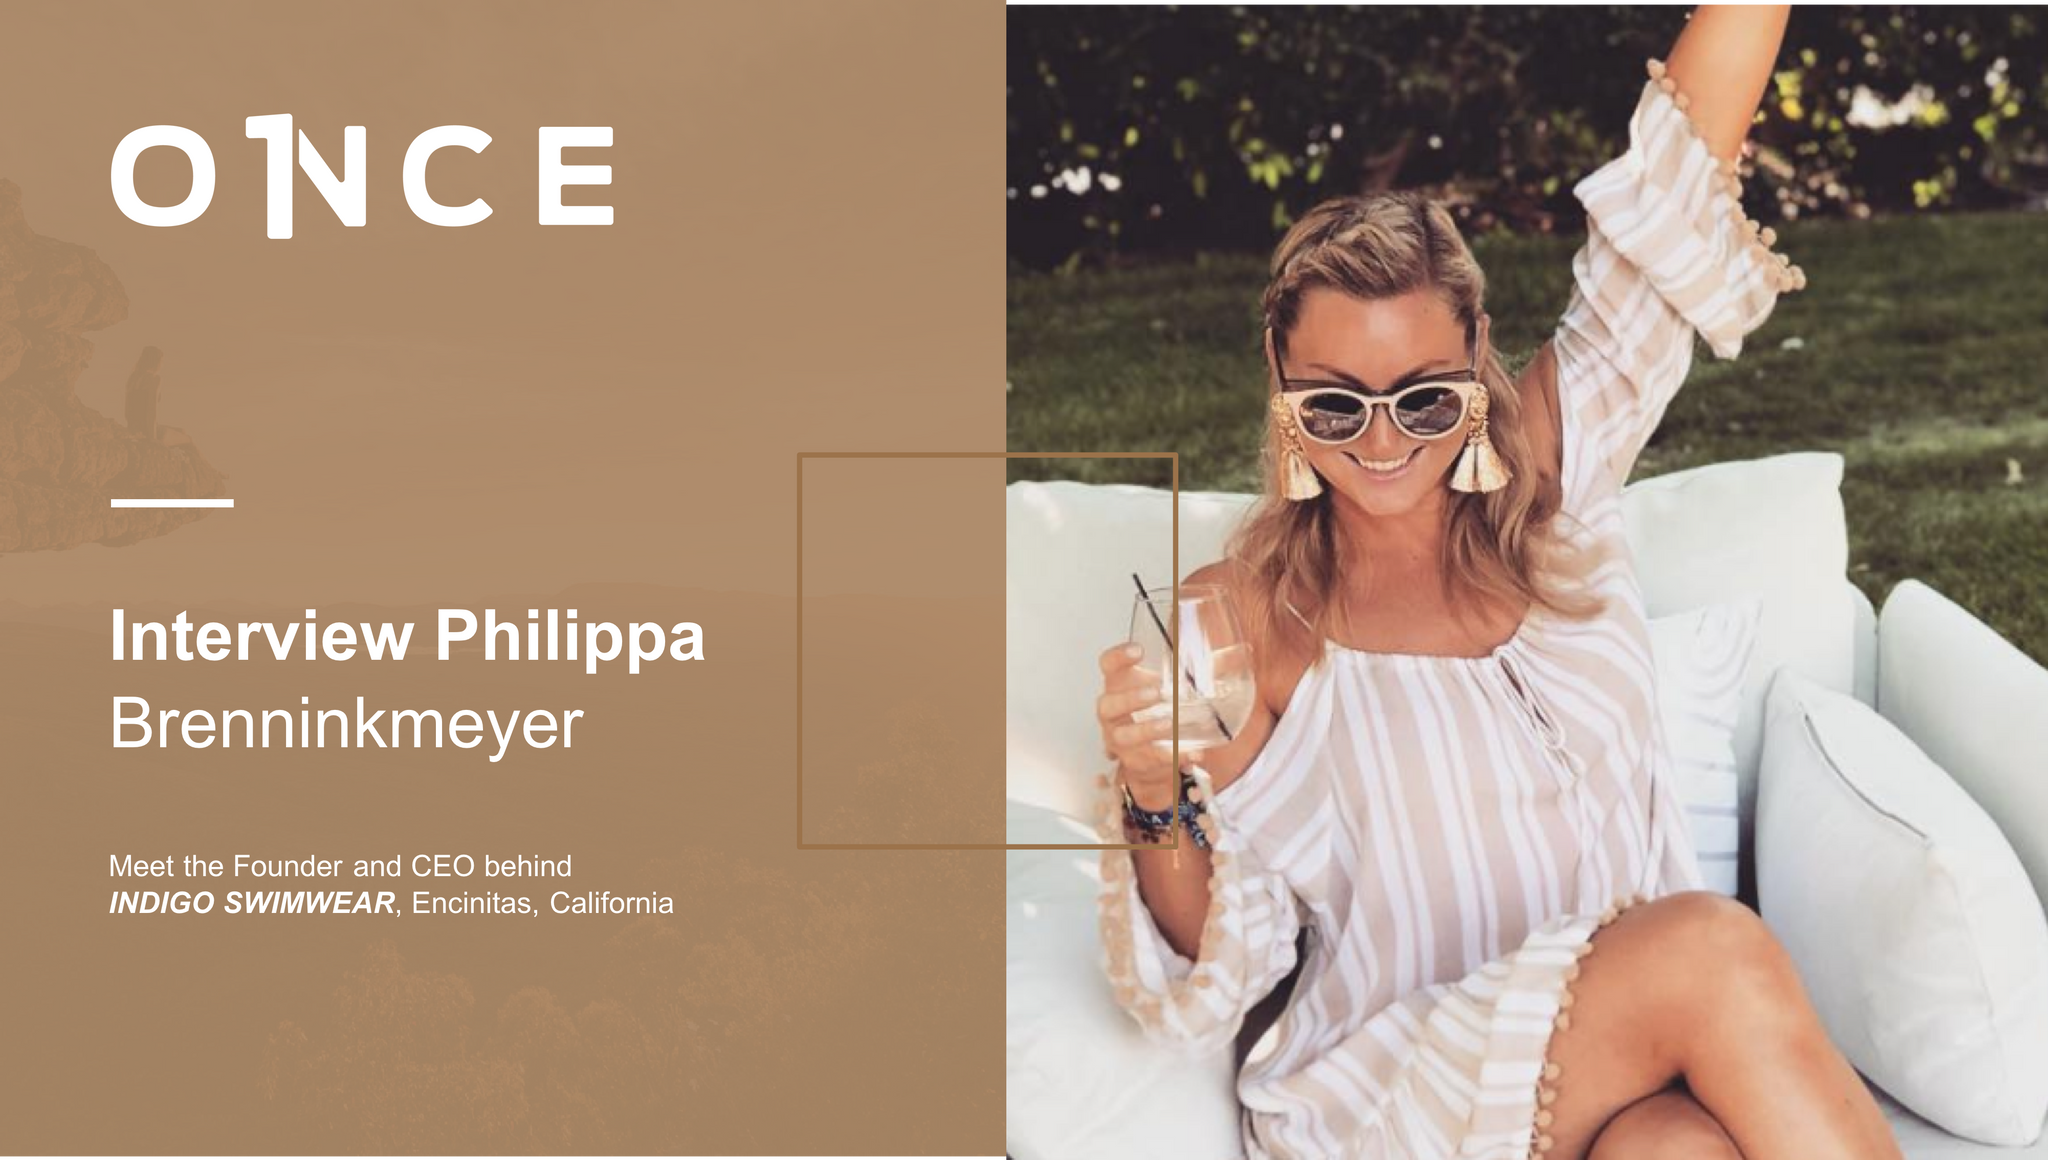 Slide introducing the interview with Philippa Brenninkmeyer of INDIGO SWIMWEAR